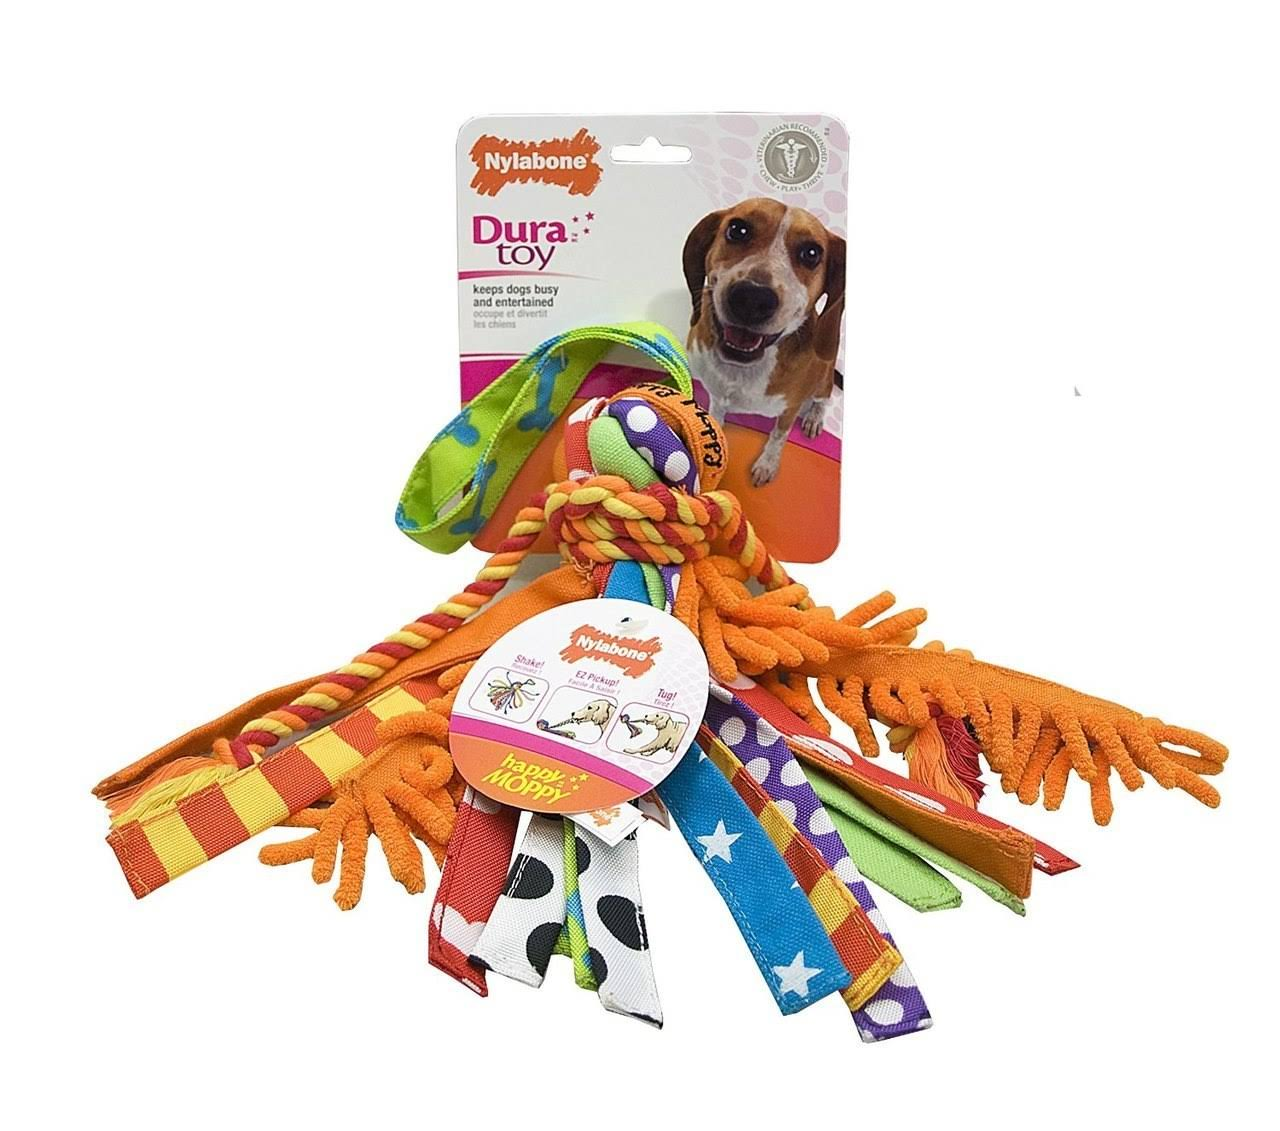 Nylabone Dura Toy Happy Moppy Fabric Dog Toy - Medium